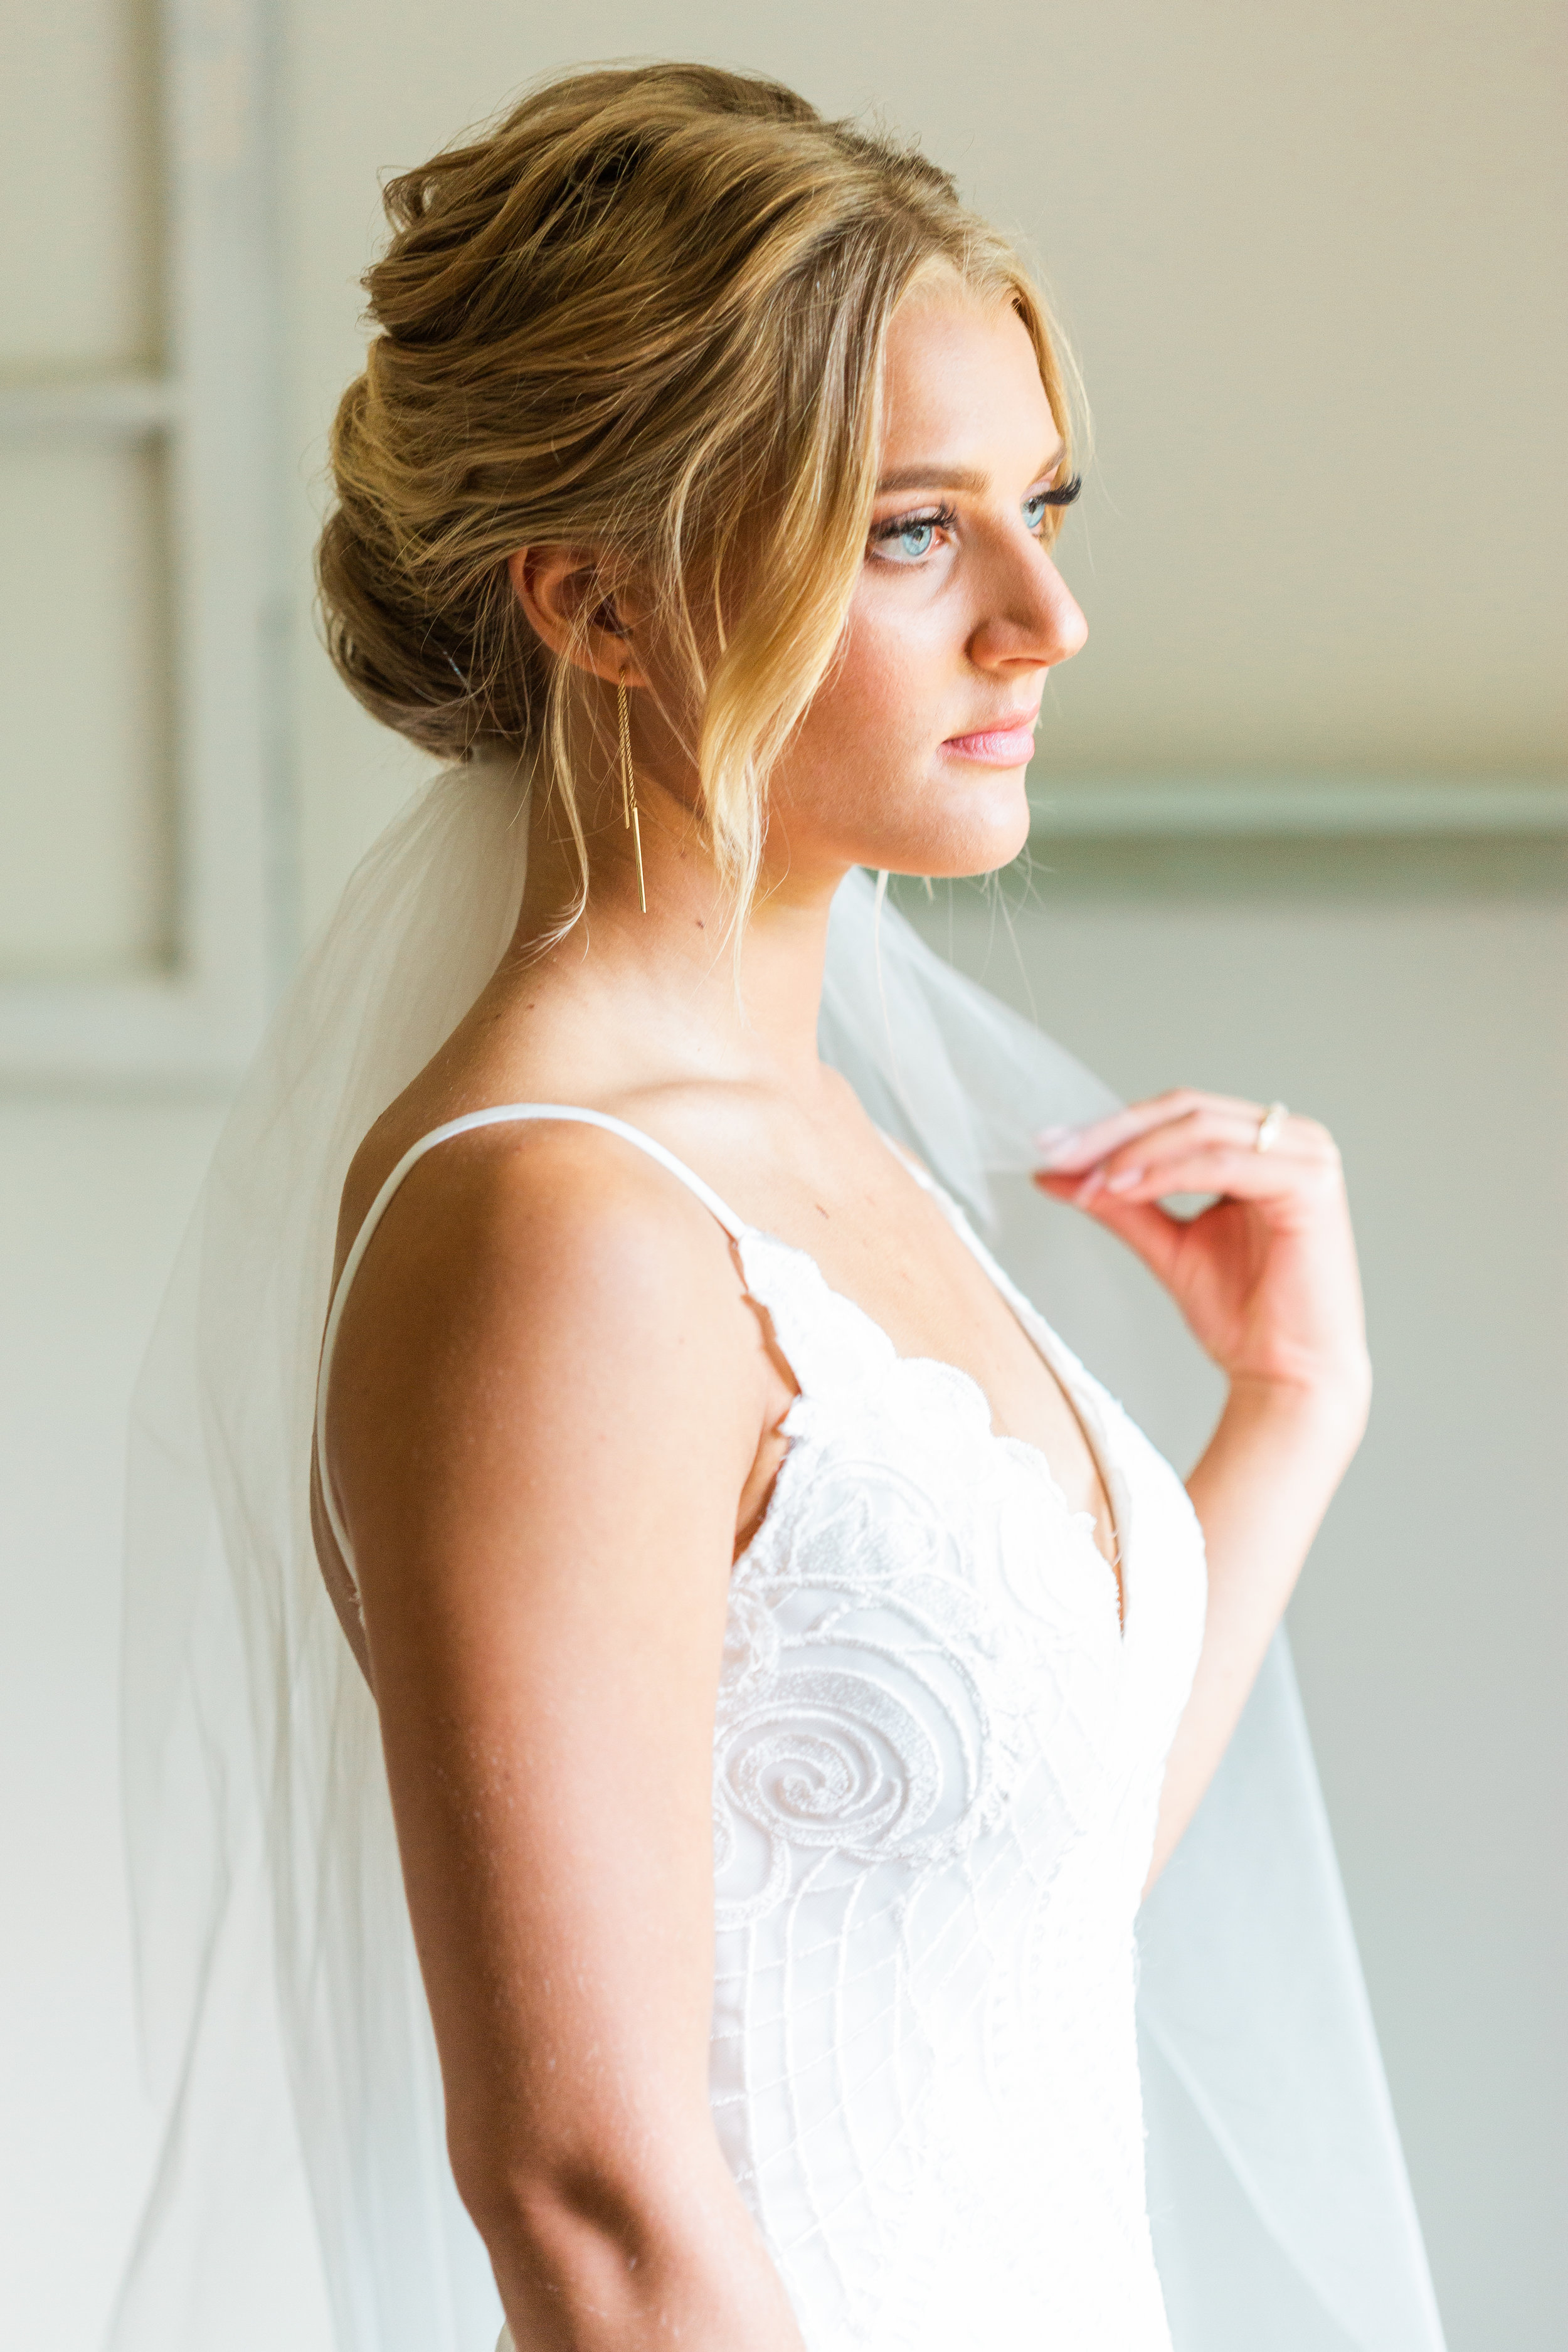 bridal portraits-renton-seattle-wedding-photographer-janelle elaine photography-1.jpg